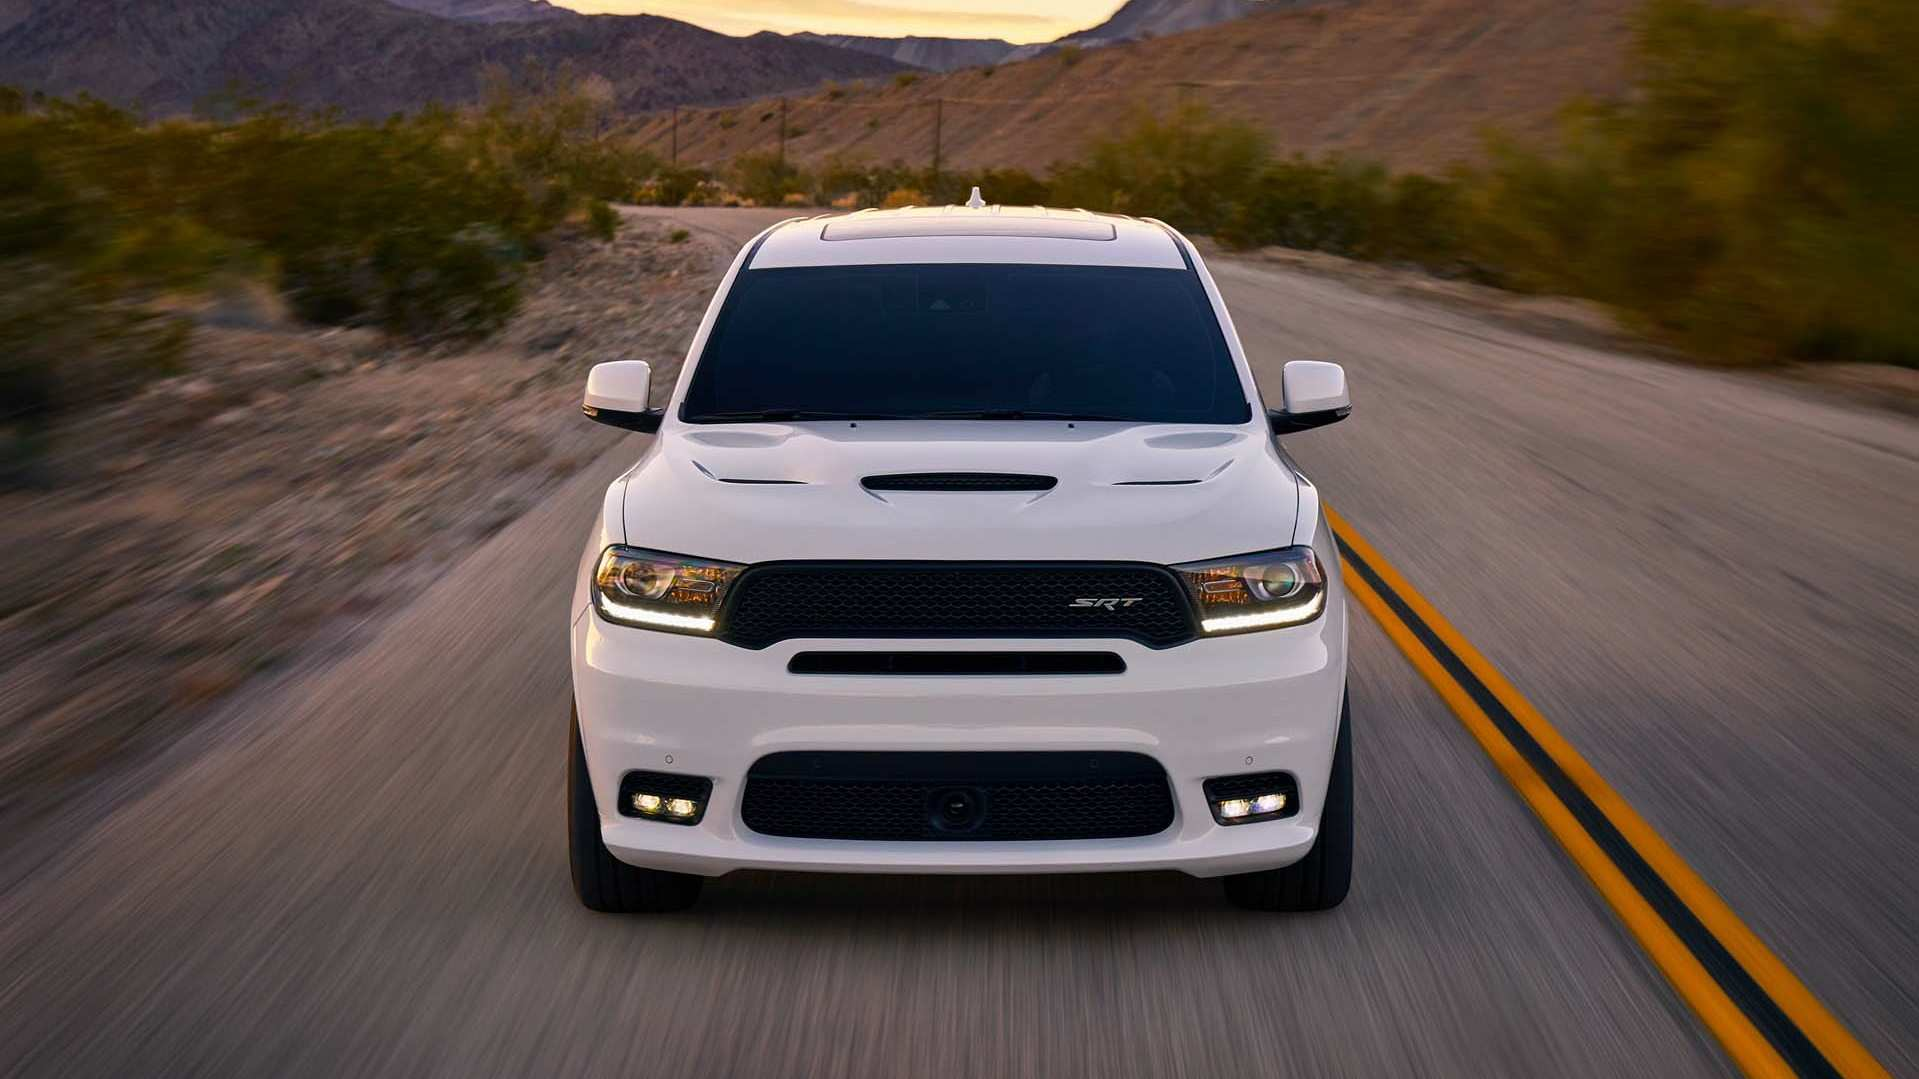 96 The 2020 Dodge Durango Diesel Srt8 Release by 2020 Dodge Durango Diesel Srt8